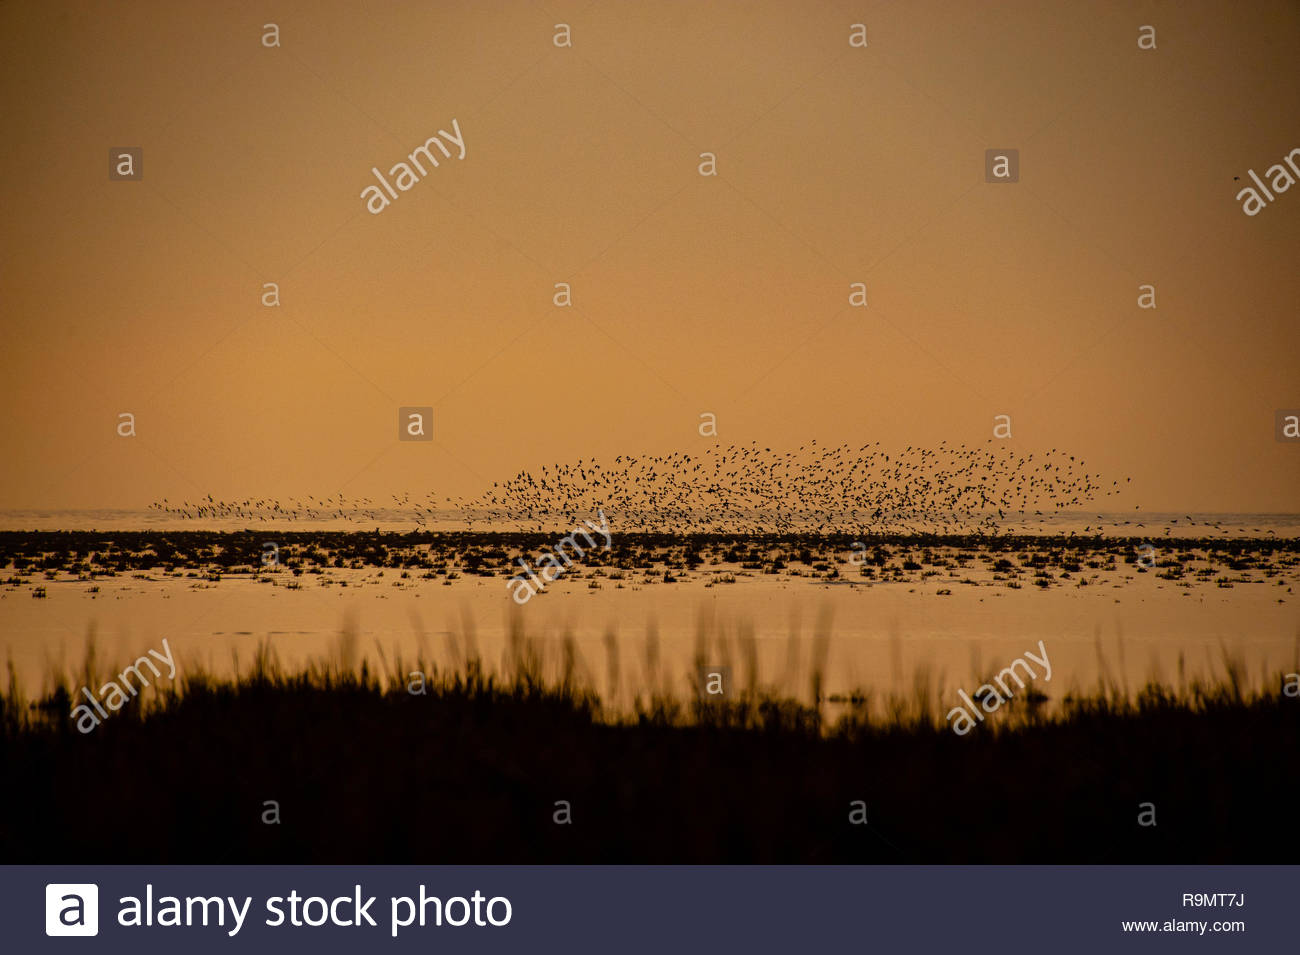 UK Weather, Southport, Merseyside, England, UK. 26th Dec, 2018. Starling murmuration on a largely grey murky Boxing day afternoon at RSPB Marshside Nature Reserve Southport. View from across the Marshes on Southport Coast, Southport, Merseyside, Lancashire, England UK Credit: Christopher Canty Photography/Alamy Live News Stock Photo